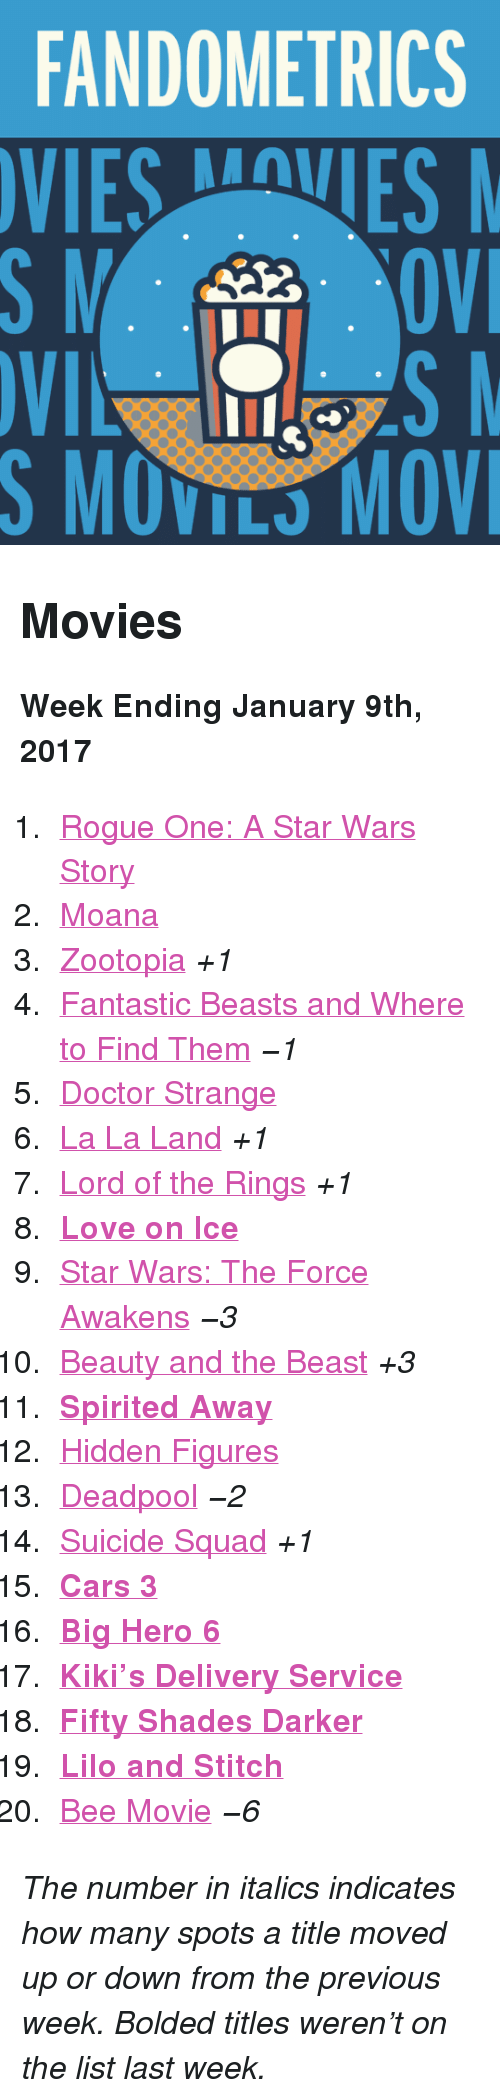 """lilo and stitch: FANDOMETRICS  VIESVES  S MOVILS MOV <h2>Movies</h2><p><b>Week Ending January 9th, 2017</b></p><ol><li><a href=""""http://www.tumblr.com/search/rogue%20one"""">Rogue One: A Star Wars Story</a></li>  <li><a href=""""http://www.tumblr.com/search/moana"""">Moana</a></li>  <li><a href=""""http://www.tumblr.com/search/zootopia"""">Zootopia</a><i>+1</i></li>  <li><a href=""""http://www.tumblr.com/search/fantastic%20beasts%20and%20where%20to%20find%20them"""">Fantastic Beasts and Where to Find Them</a><i>−1</i></li>  <li><a href=""""http://www.tumblr.com/search/doctor%20strange"""">Doctor Strange</a></li>  <li><a href=""""http://www.tumblr.com/search/la%20la%20land"""">La La Land</a><i>+1</i></li>  <li><a href=""""http://www.tumblr.com/search/lotr"""">Lord of the Rings</a><i>+1</i></li>  <li><a href=""""http://www.tumblr.com/search/#love%20on%20ice""""><b>Love on Ice</b></a></li>  <li><a href=""""http://www.tumblr.com/search/the%20force%20awakens"""">Star Wars: The Force Awakens</a><i>−3</i></li>  <li><a href=""""http://www.tumblr.com/search/beauty%20and%20the%20beast"""">Beauty and the Beast</a><i>+3</i></li>  <li><a href=""""http://www.tumblr.com/search/spirited%20away""""><b>Spirited Away</b></a></li>  <li><a href=""""http://www.tumblr.com/search/hidden%20figures"""">Hidden Figures</a></li>  <li><a href=""""http://www.tumblr.com/search/deadpool"""">Deadpool</a><i>−2</i></li>  <li><a href=""""http://www.tumblr.com/search/suicide%20squad"""">Suicide Squad</a><i>+1</i></li>  <li><a href=""""http://www.tumblr.com/search/cars%203""""><b>Cars 3</b></a></li>  <li><a href=""""http://www.tumblr.com/search/big%20hero%206""""><b>Big Hero 6</b></a></li>  <li><a href=""""http://www.tumblr.com/search/kiki's%20delivery%20service""""><b>Kiki&rsquo;s Delivery Service</b></a></li>  <li><a href=""""http://www.tumblr.com/search/fifty%20shades%20darker""""><b>Fifty Shades Darker</b></a></li>  <li><a href=""""http://www.tumblr.com/search/lilo%20and%20stitch""""><b>Lilo and Stitch</b></a></li>  <li><a href=""""http://www.tumblr.com/search/bee%20movie"""">Bee Movie</a><i>−6</i></li></ol><p><i>Th"""